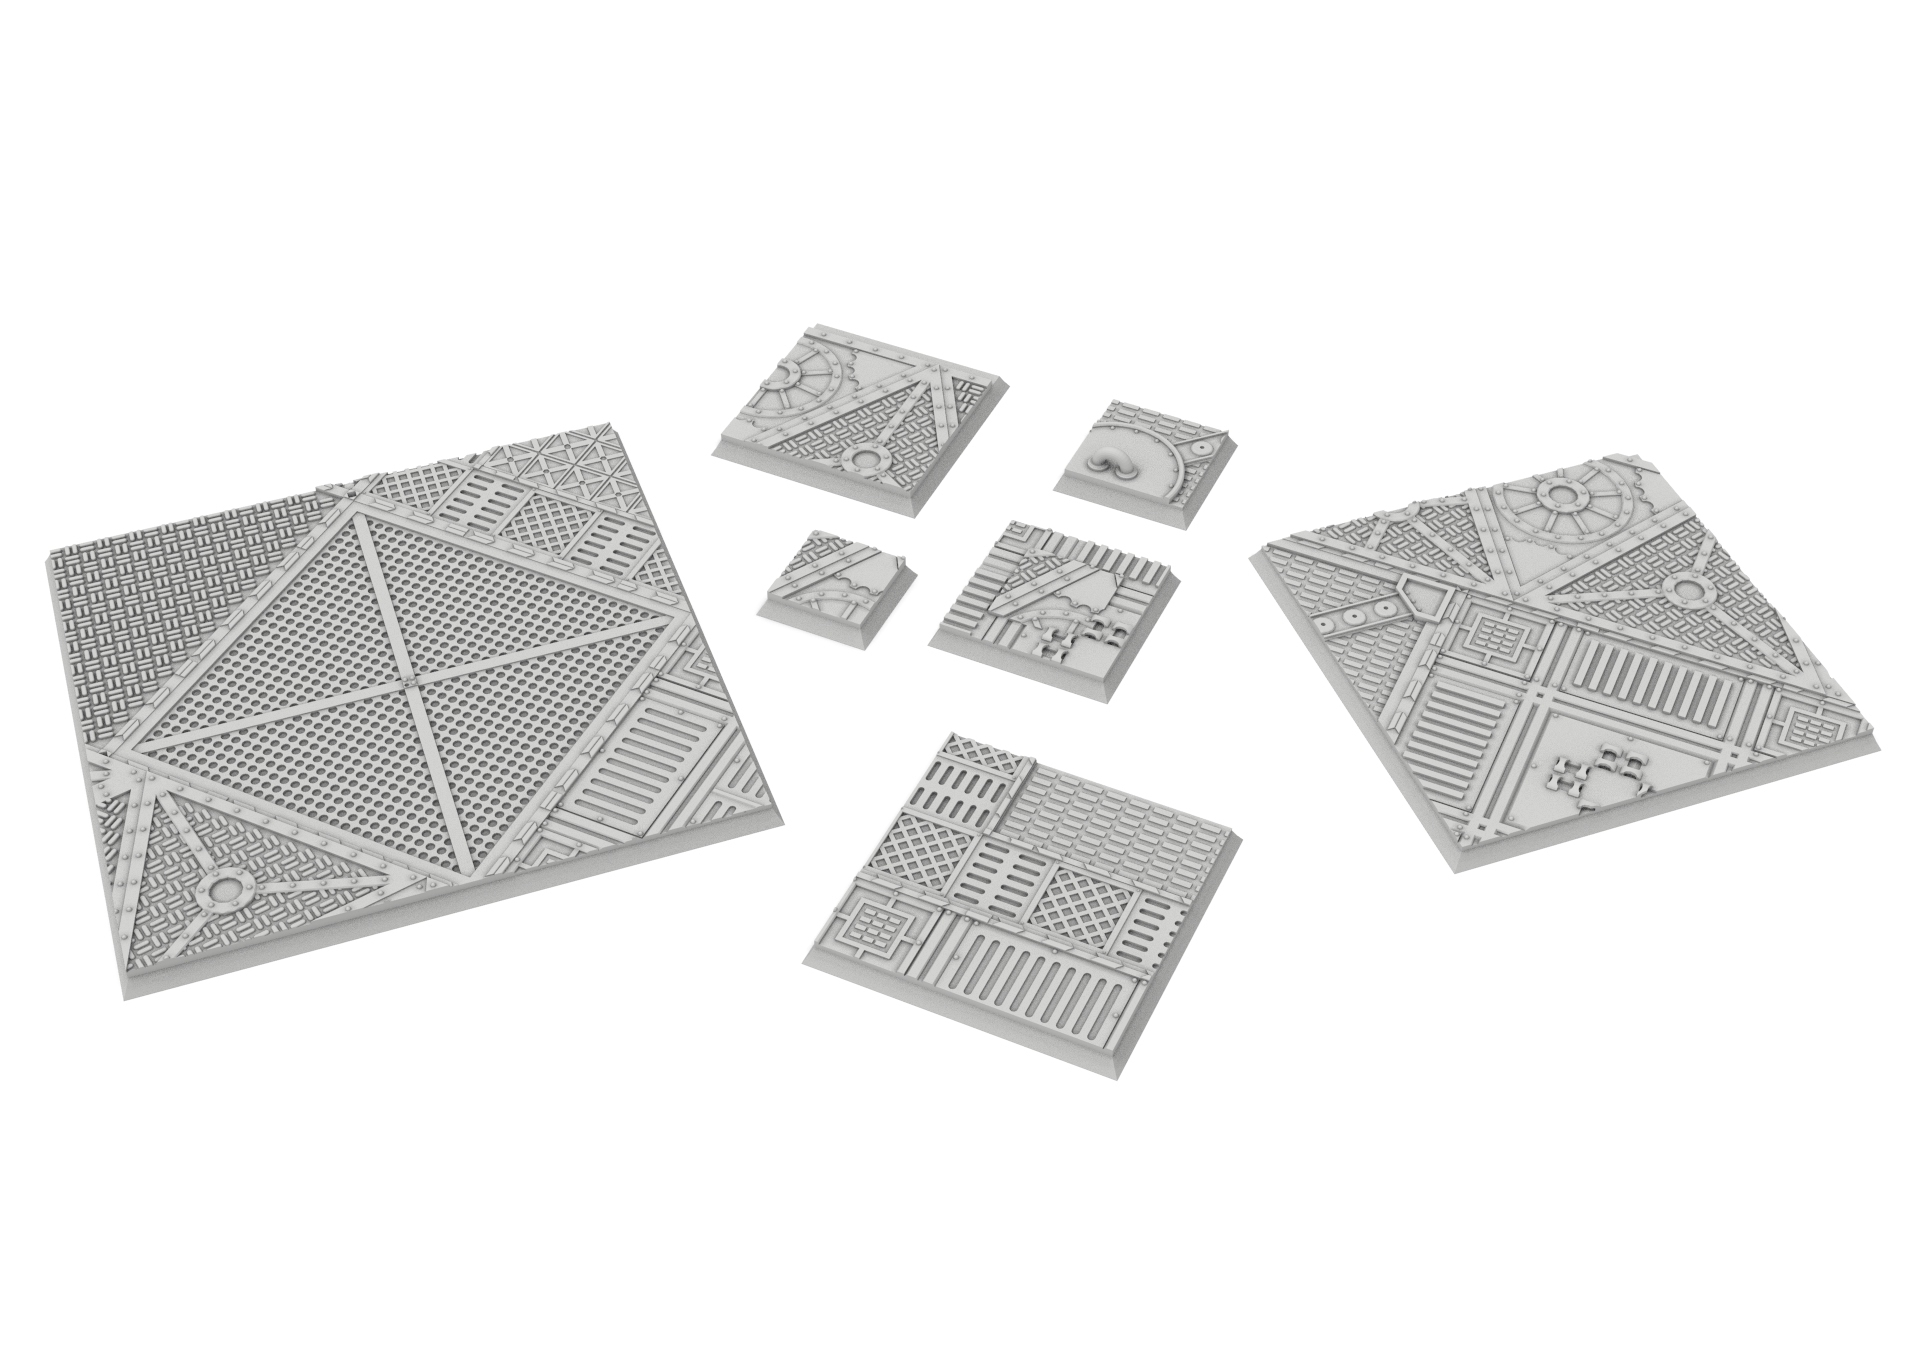 untitled.82.jpg Download STL file x1000 Round, oval, square, rectangular, hexagonal, industrial textured bases • 3D print design, Alario